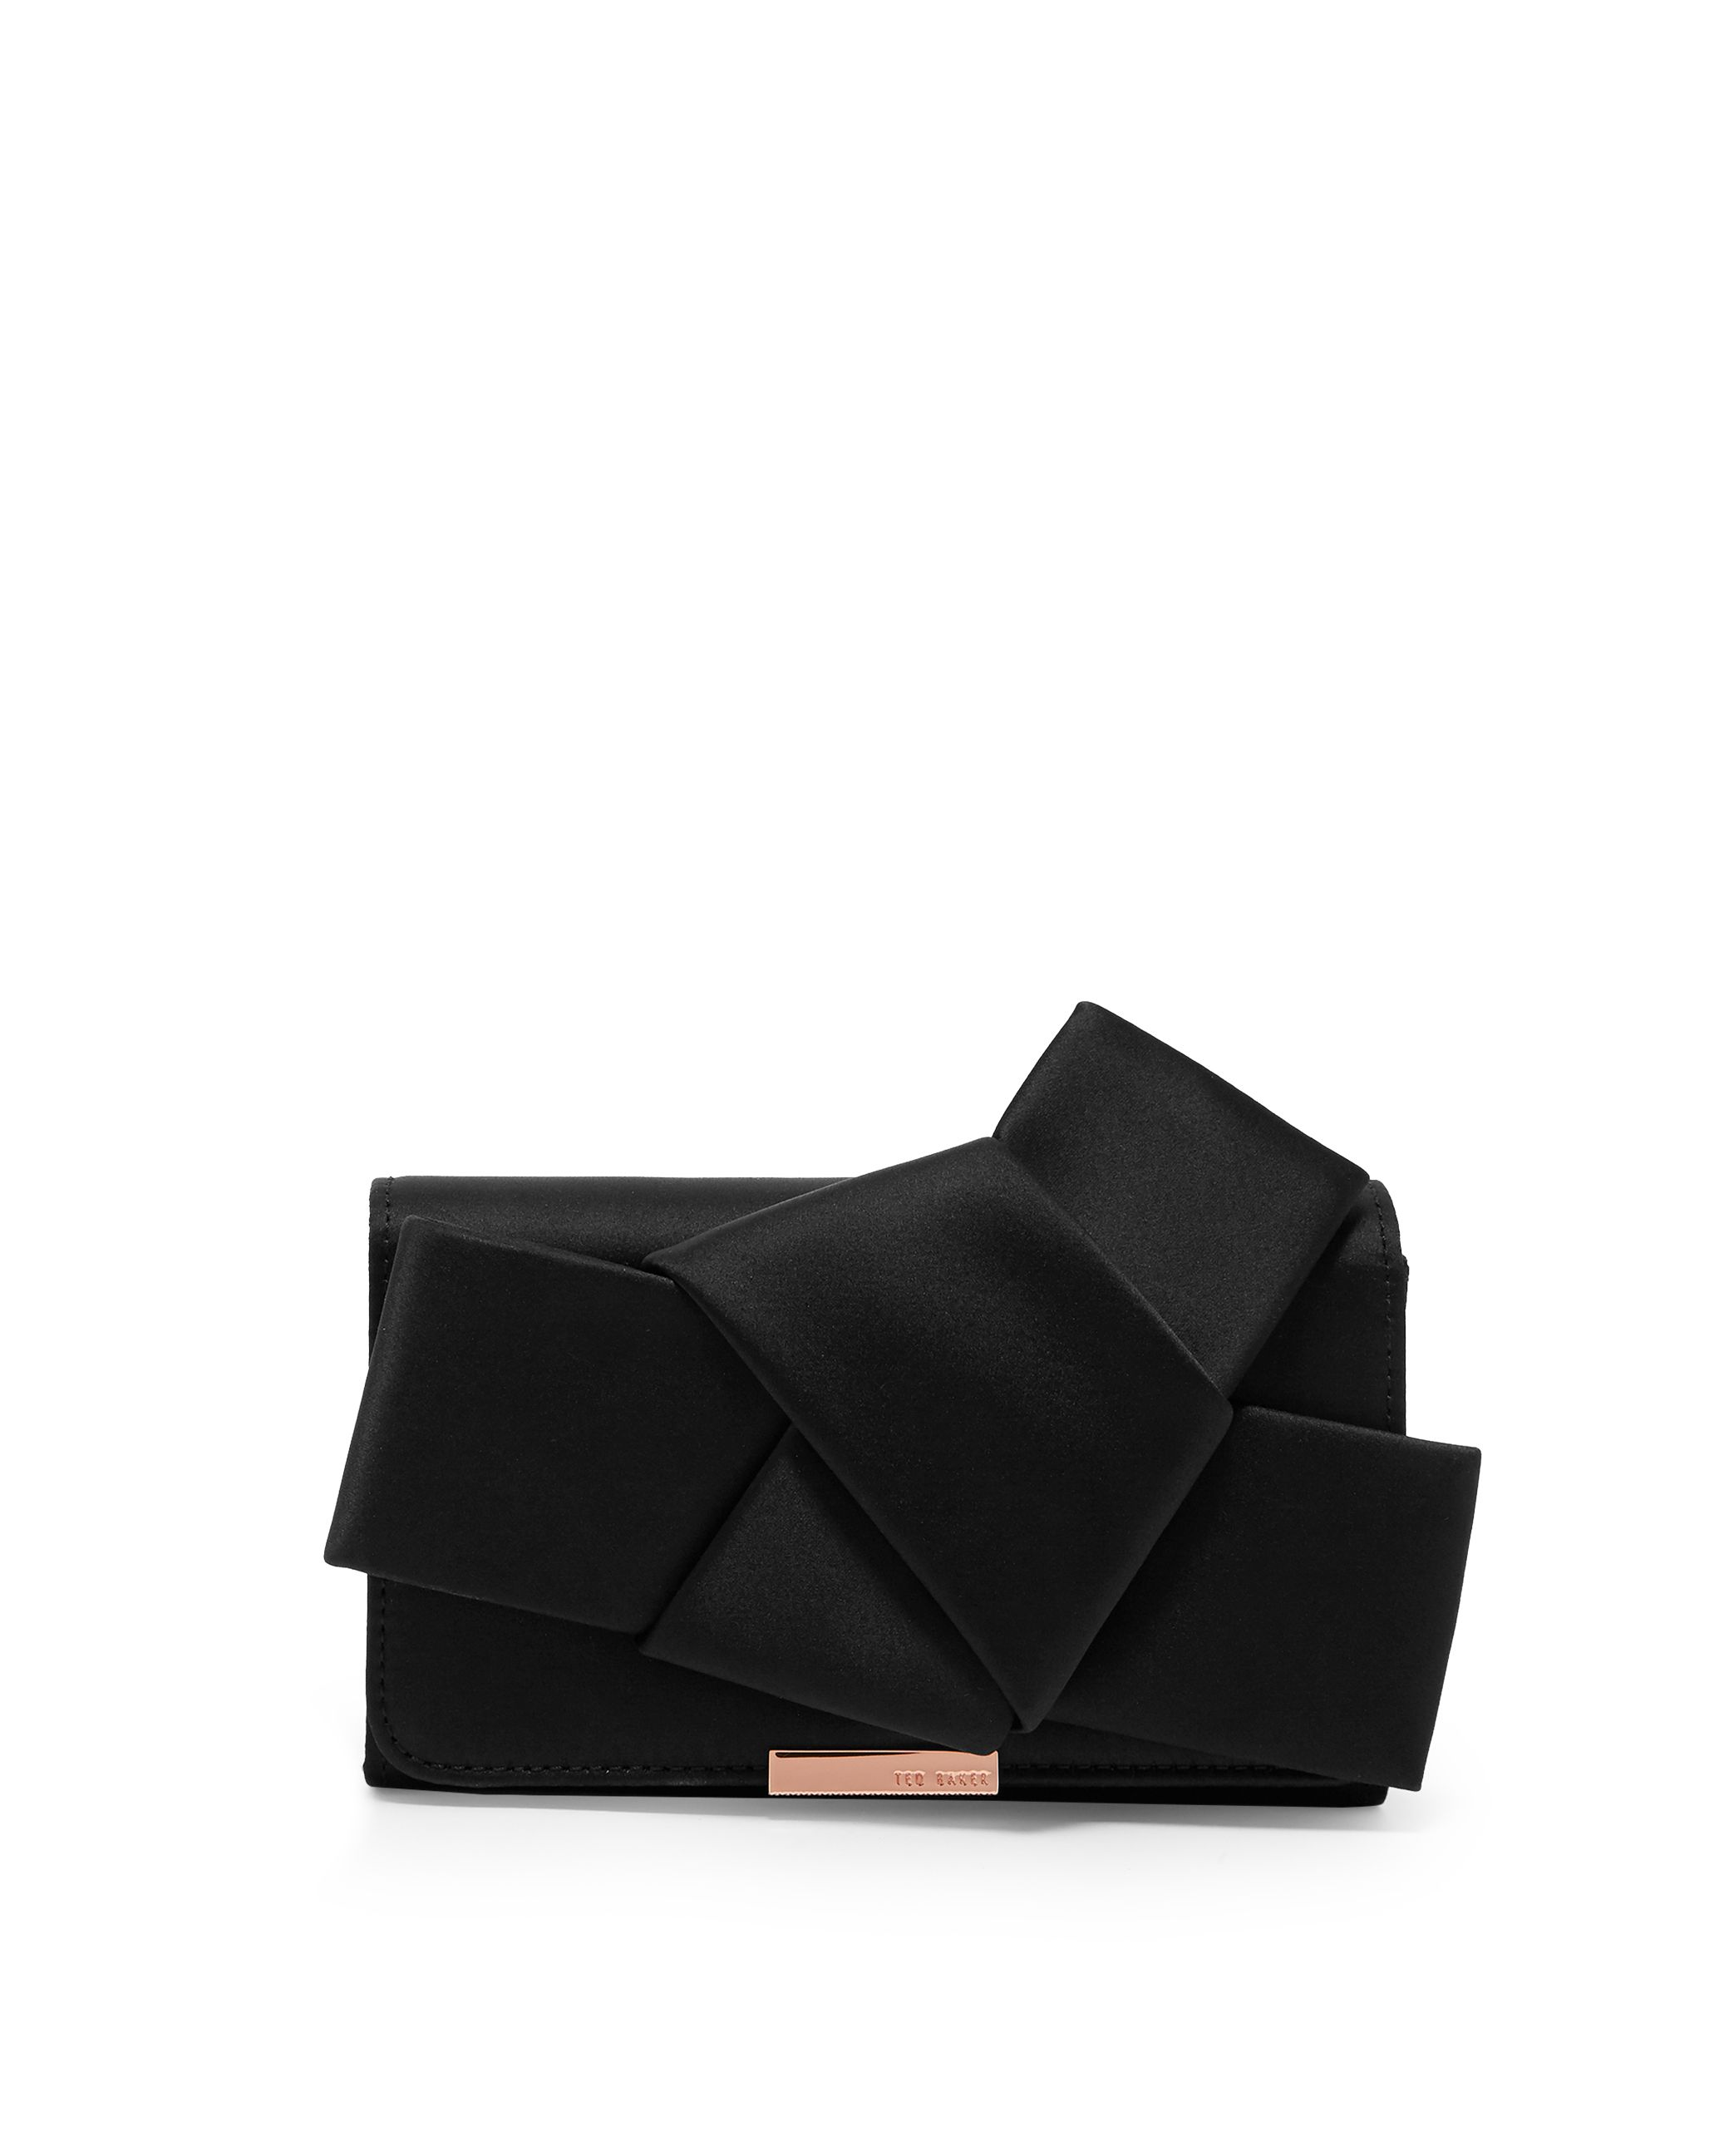 2d6c45e48d9b fefee-knot-bow-evening-bag by ted-baker